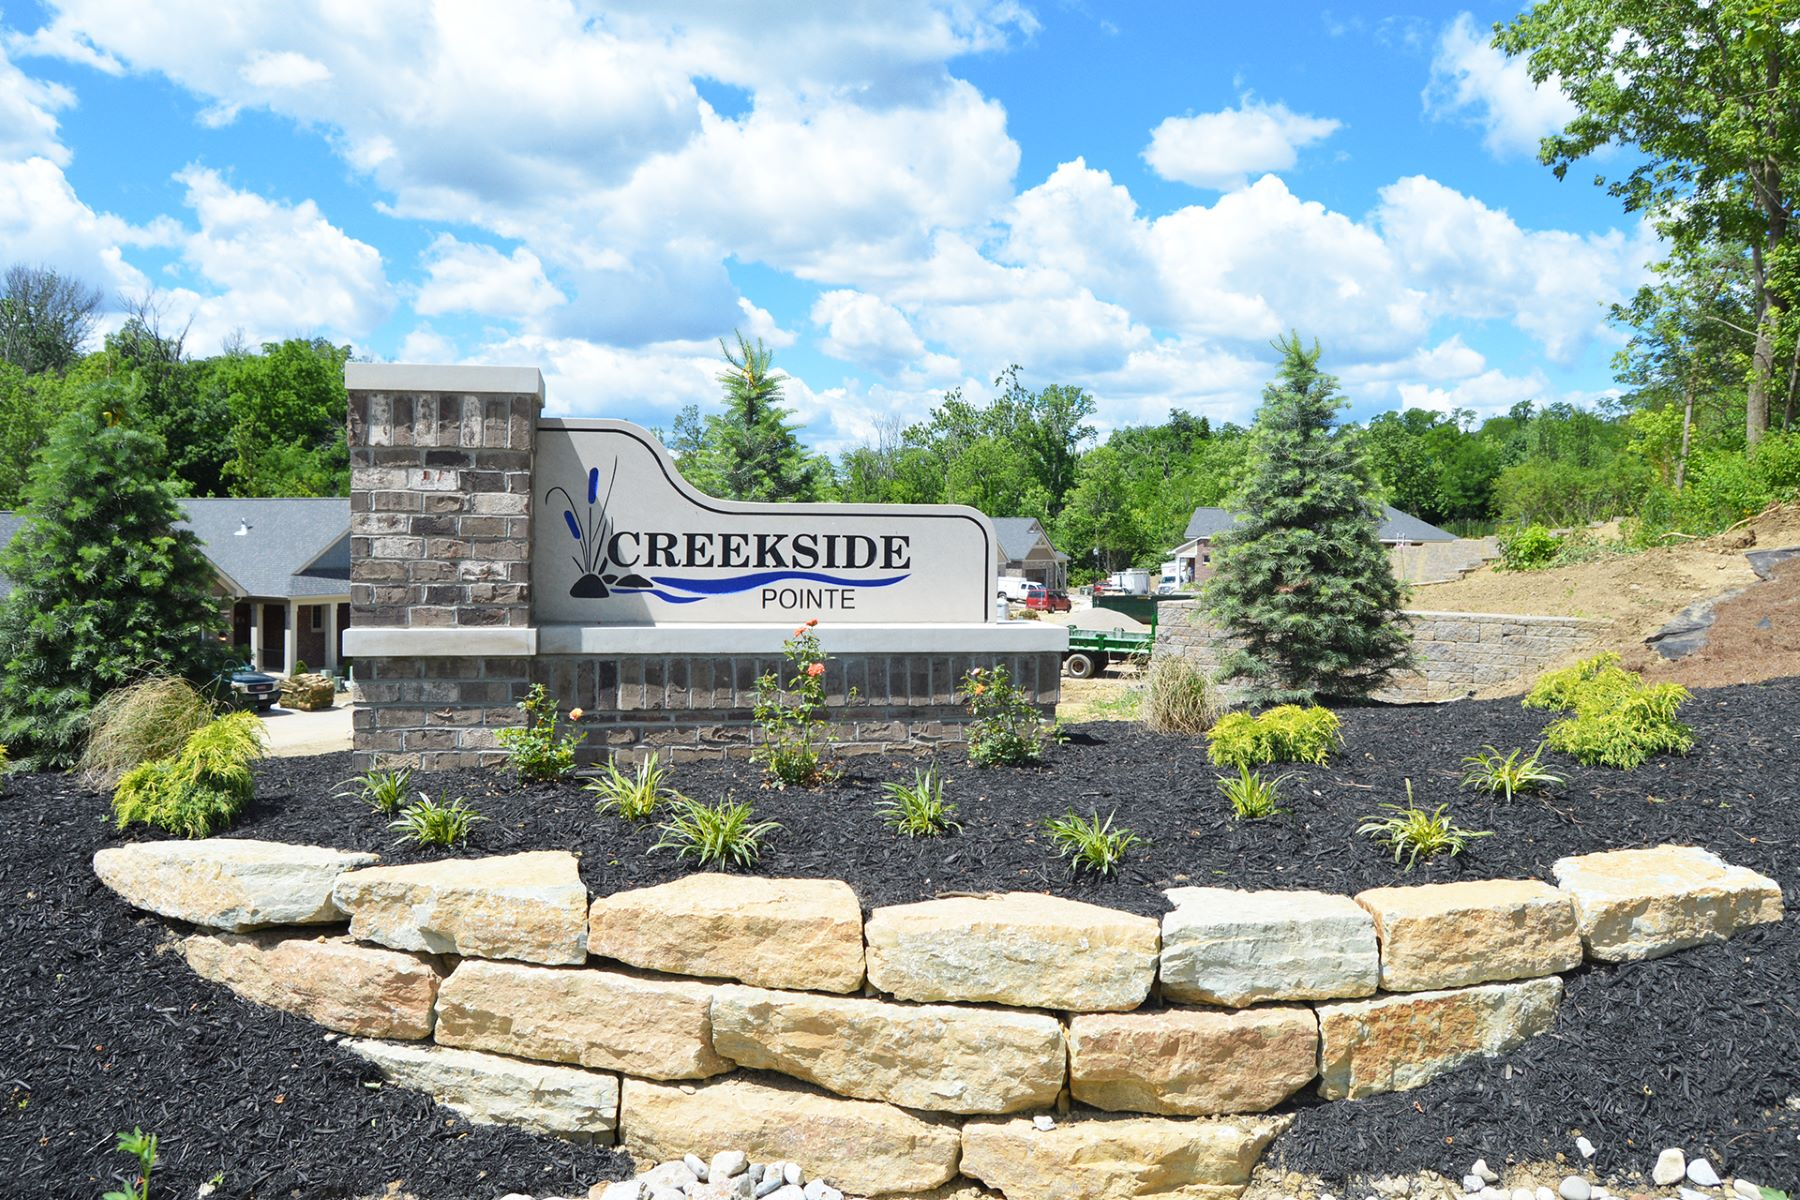 Single Family Home for Sale at Creekside Pointe 4026 Creekside Pointe 9415 Plainfield Rd. - GPS Coordinates Cincinnati, Ohio 45236 United States